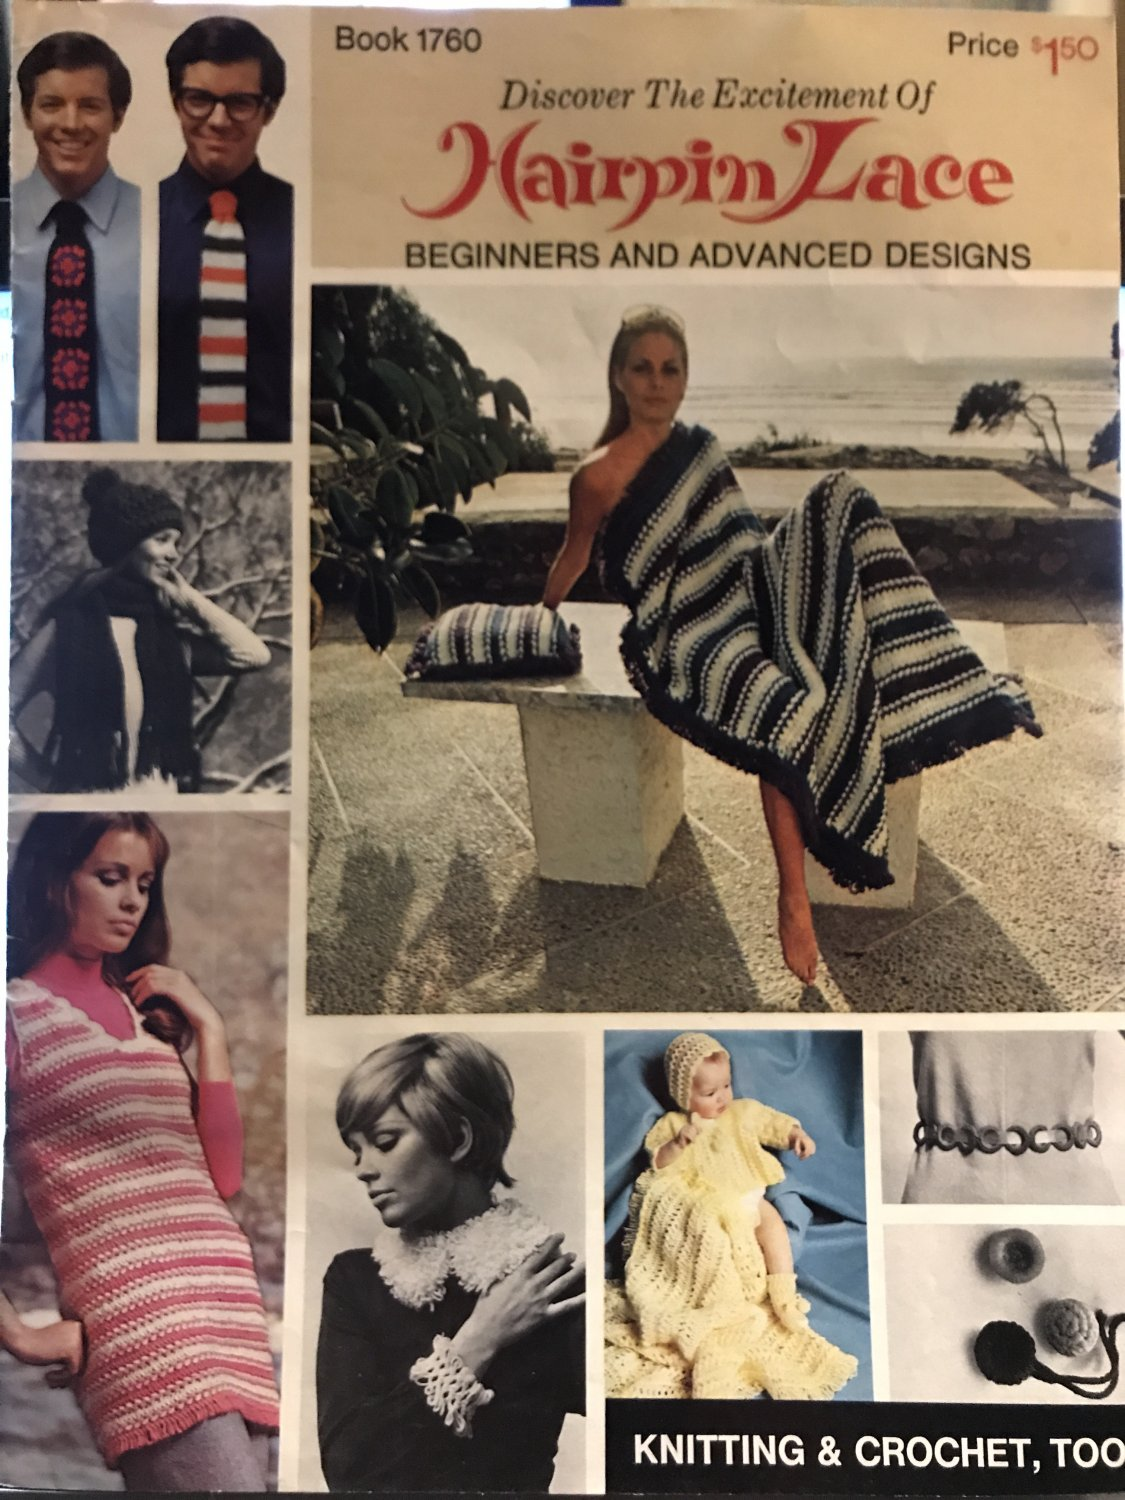 Bates Book 1760 Hairpin Lace Patterns Mod Designs for Men Women and Children Beginner and Advanced